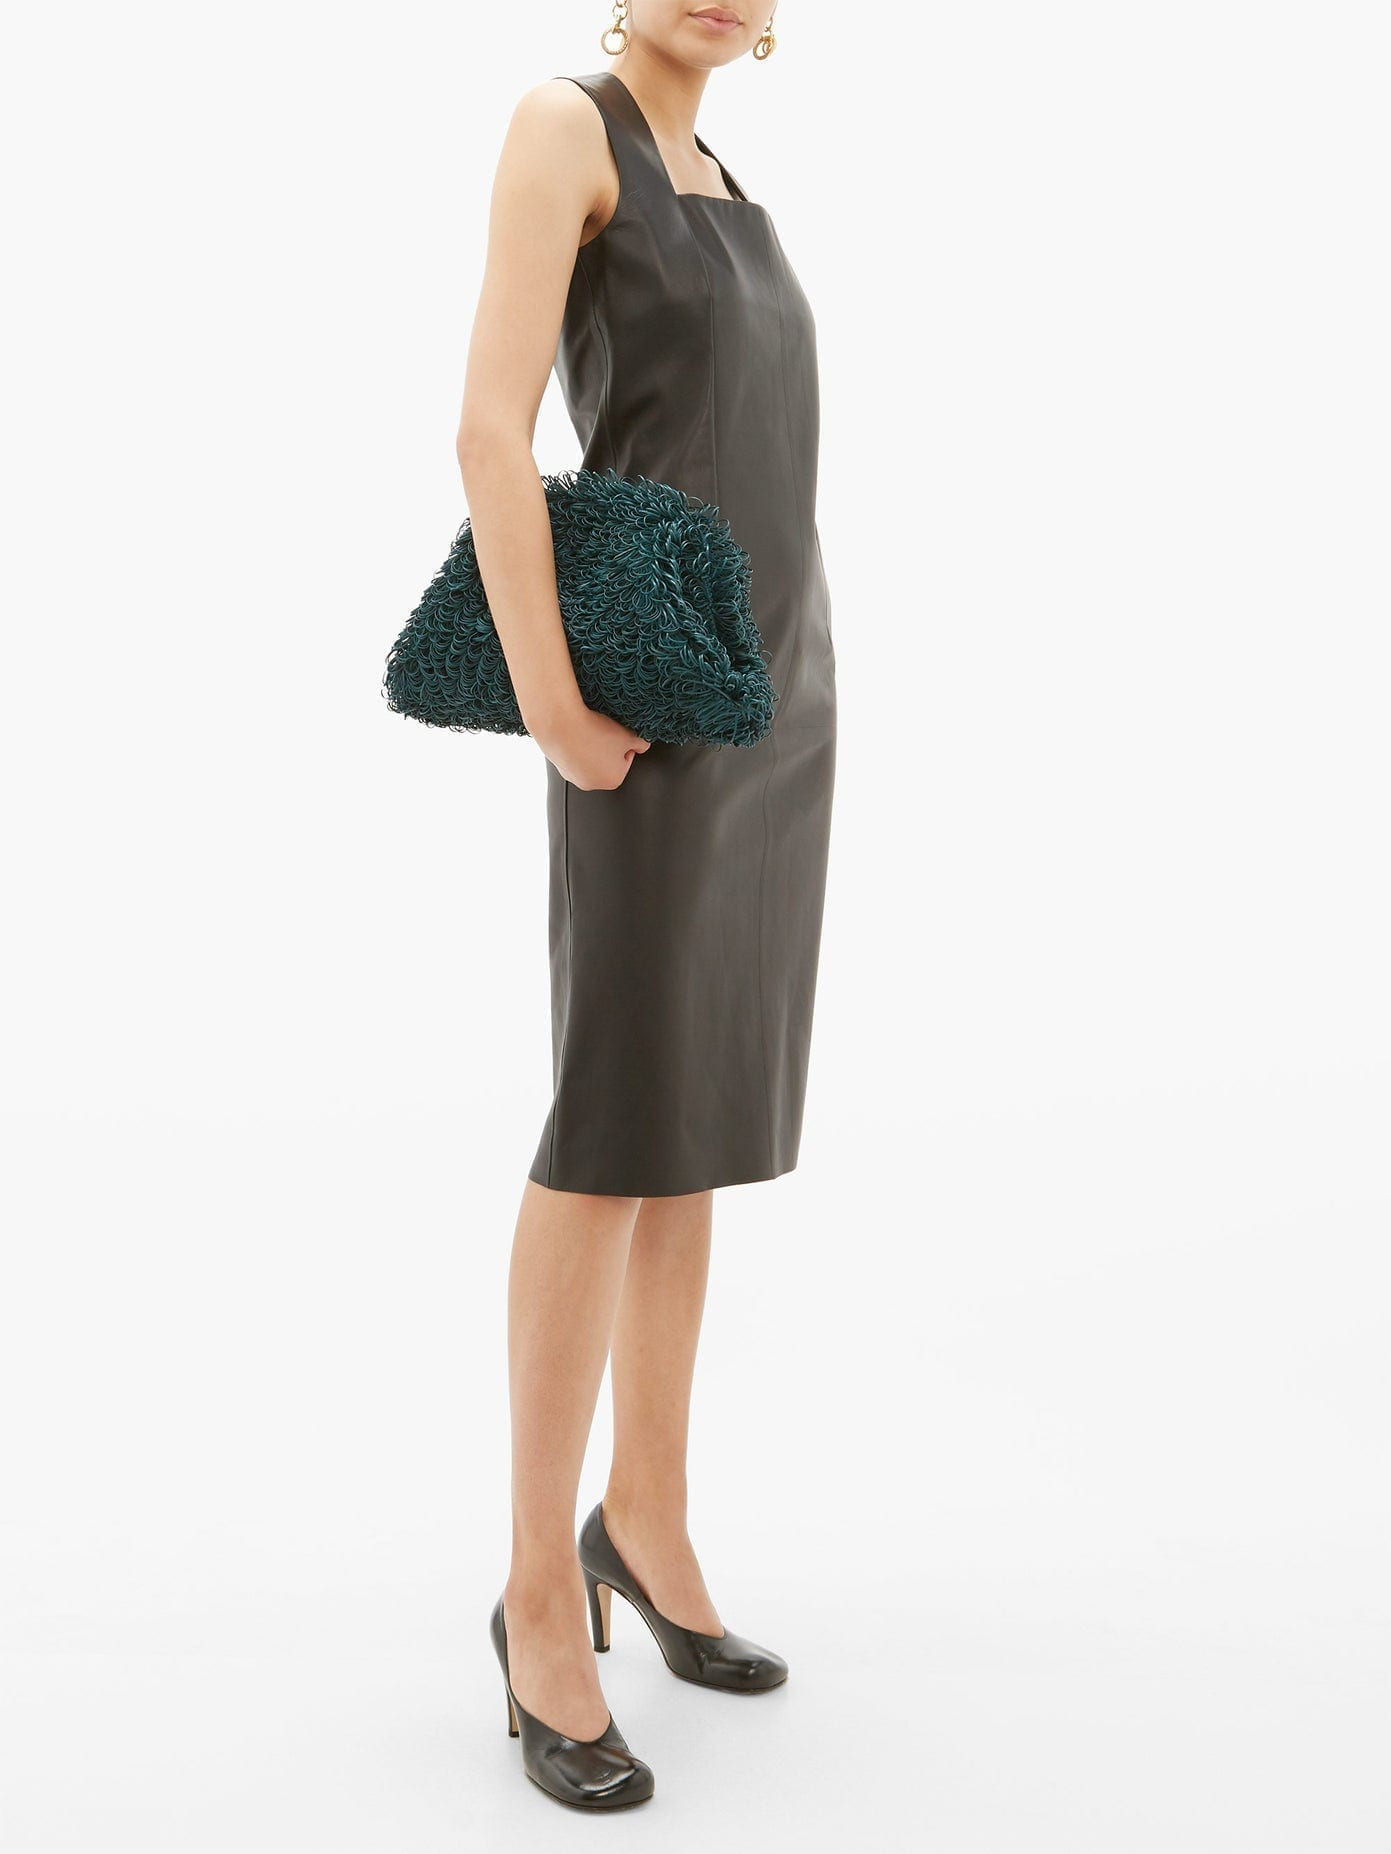 BOTTEGA VENETA Square-neckline Leather Dress